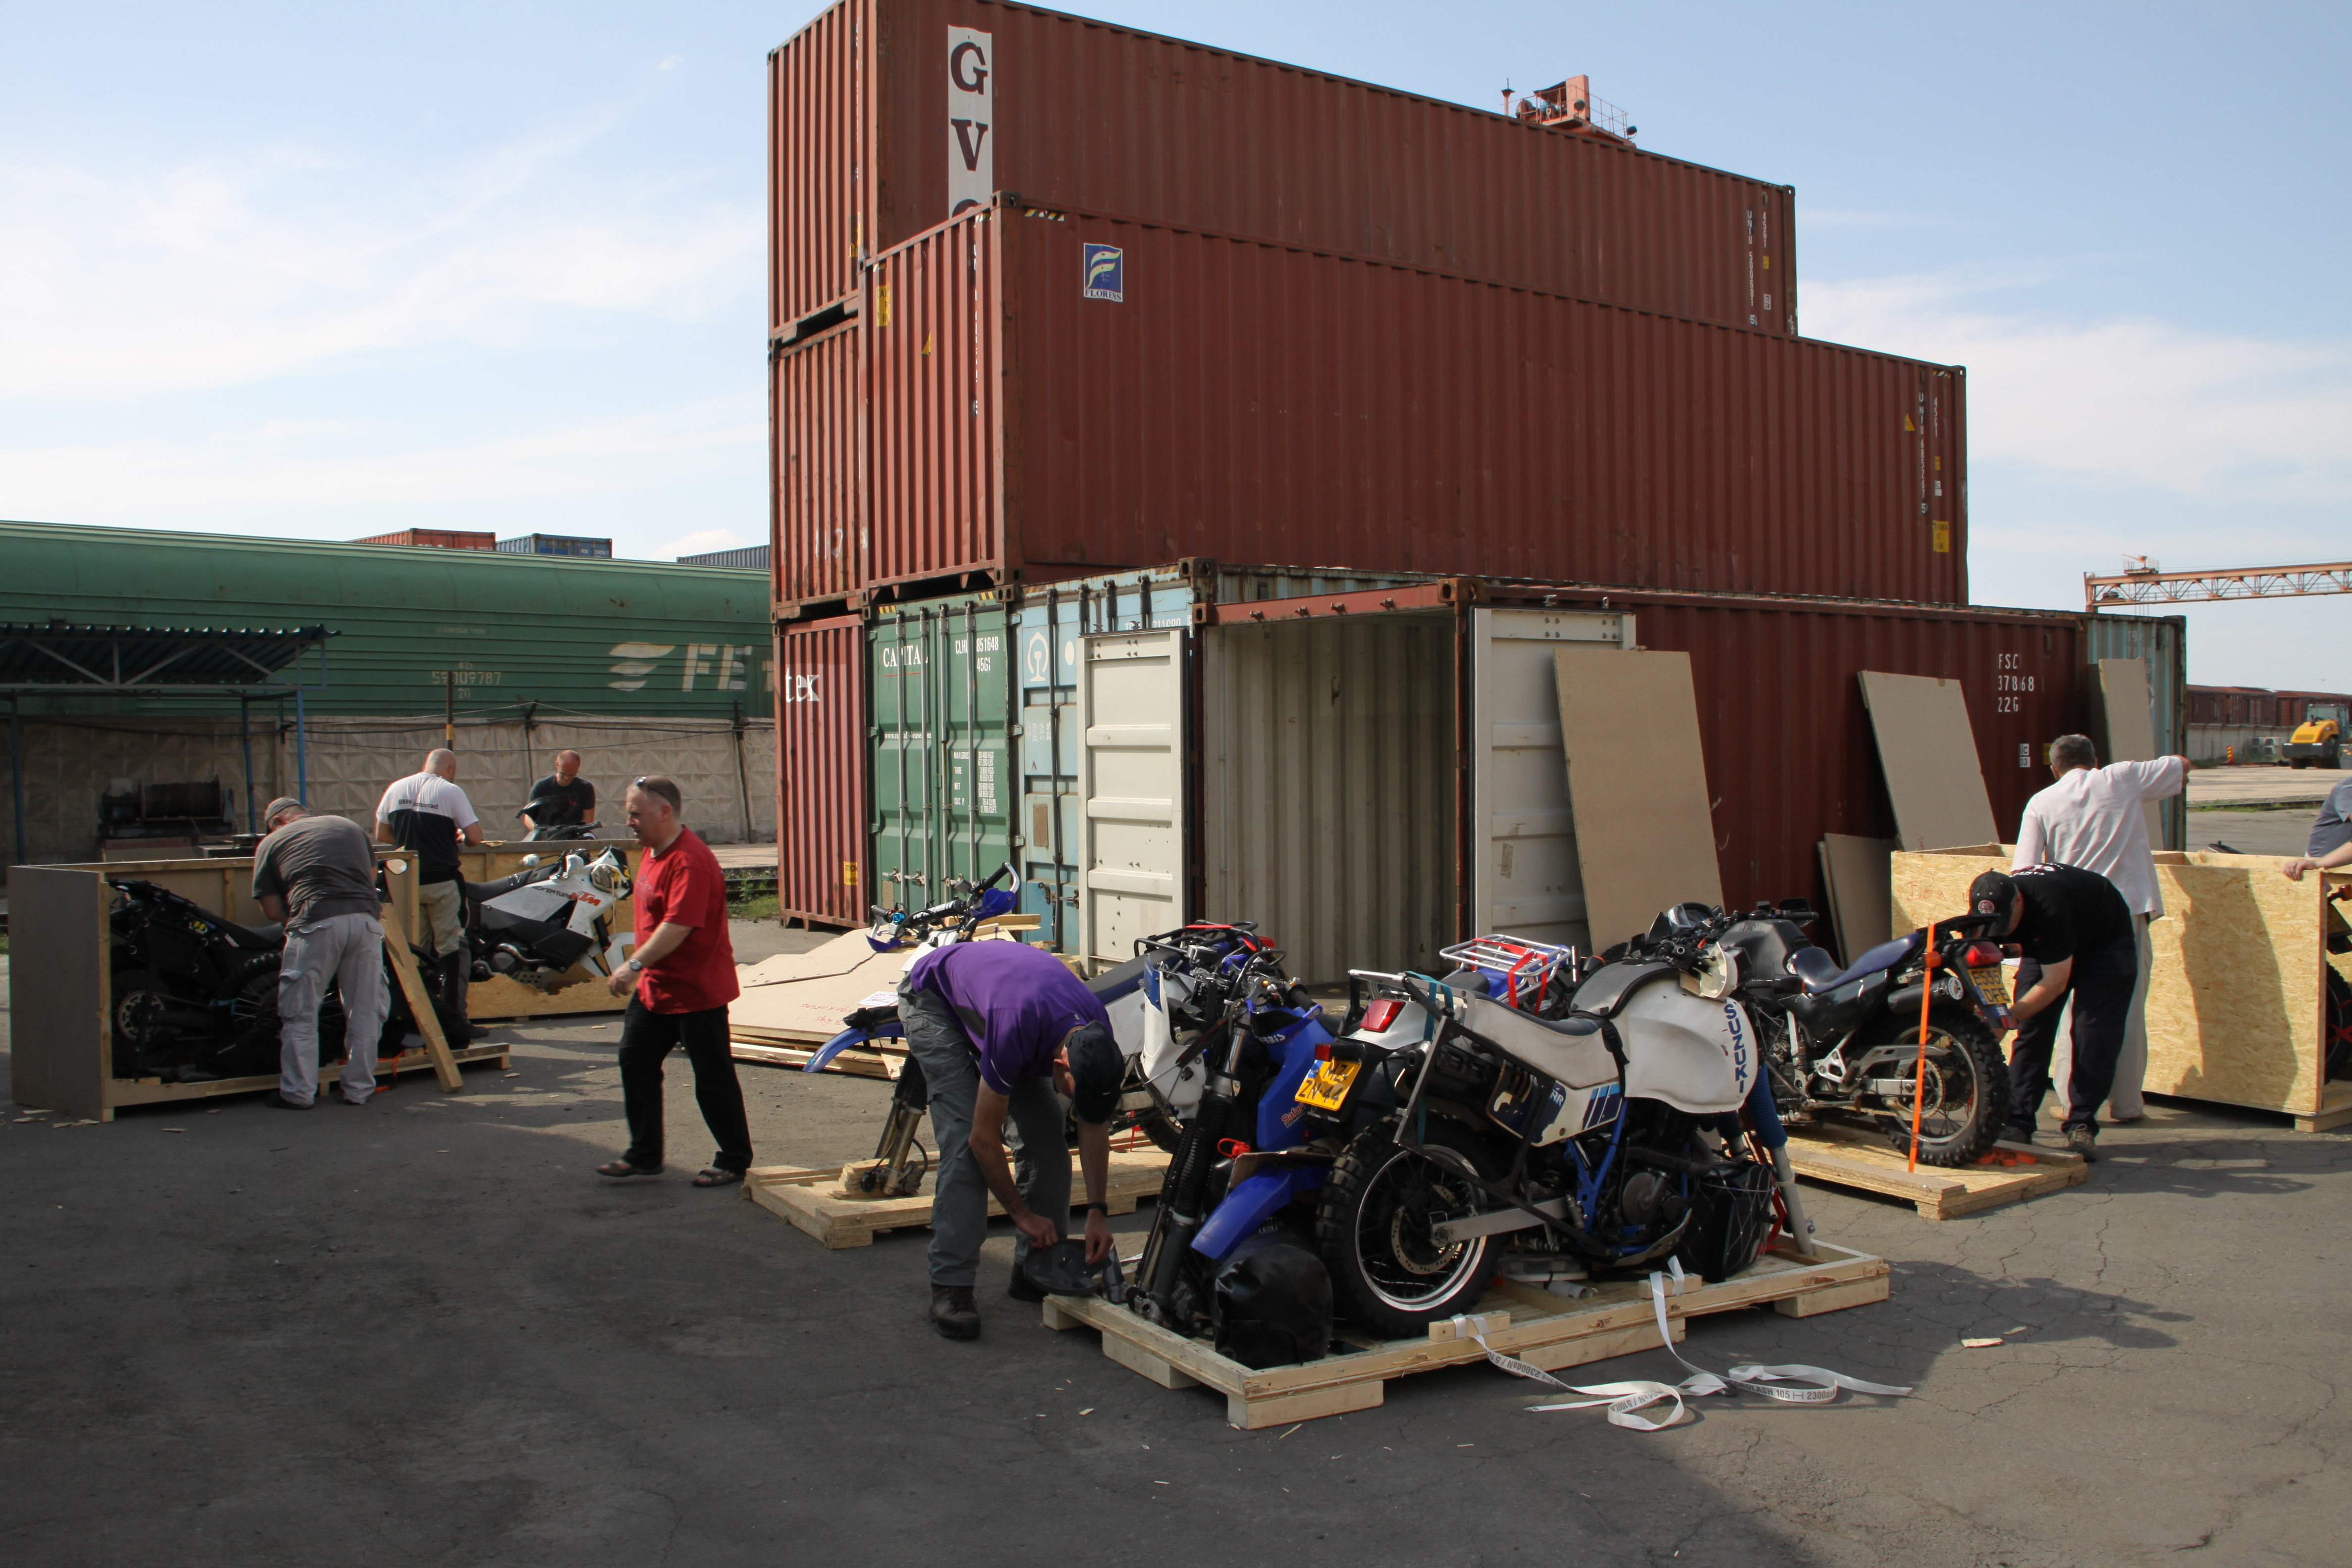 Unpacking the bikes